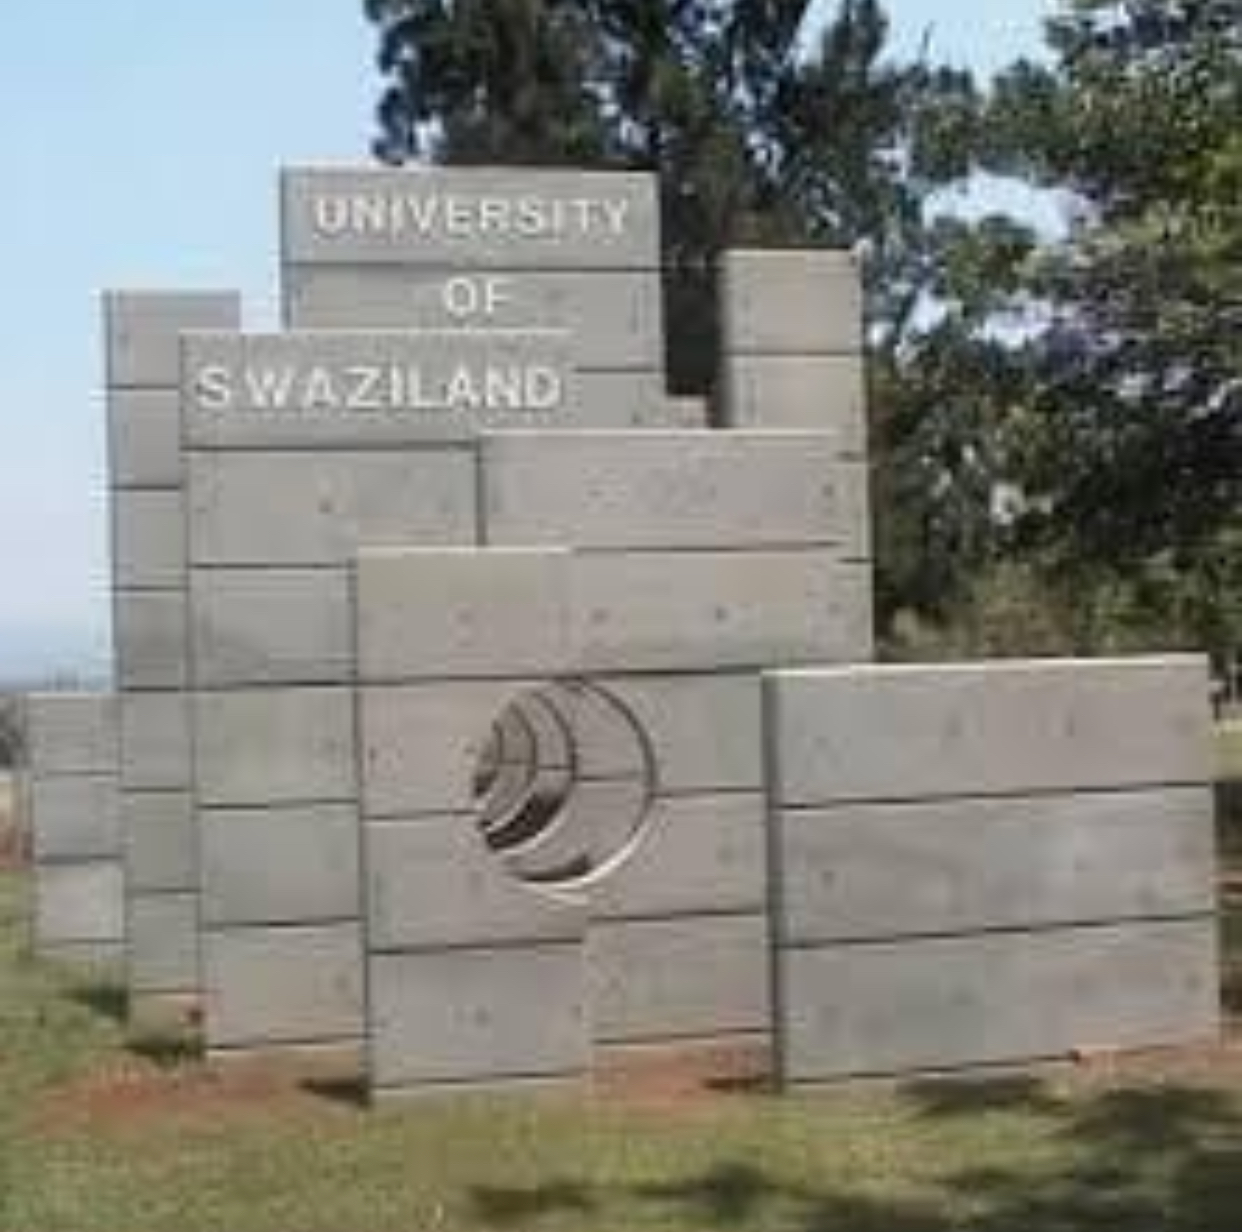 Scholarship crisis: University of Eswatini closed until further notice